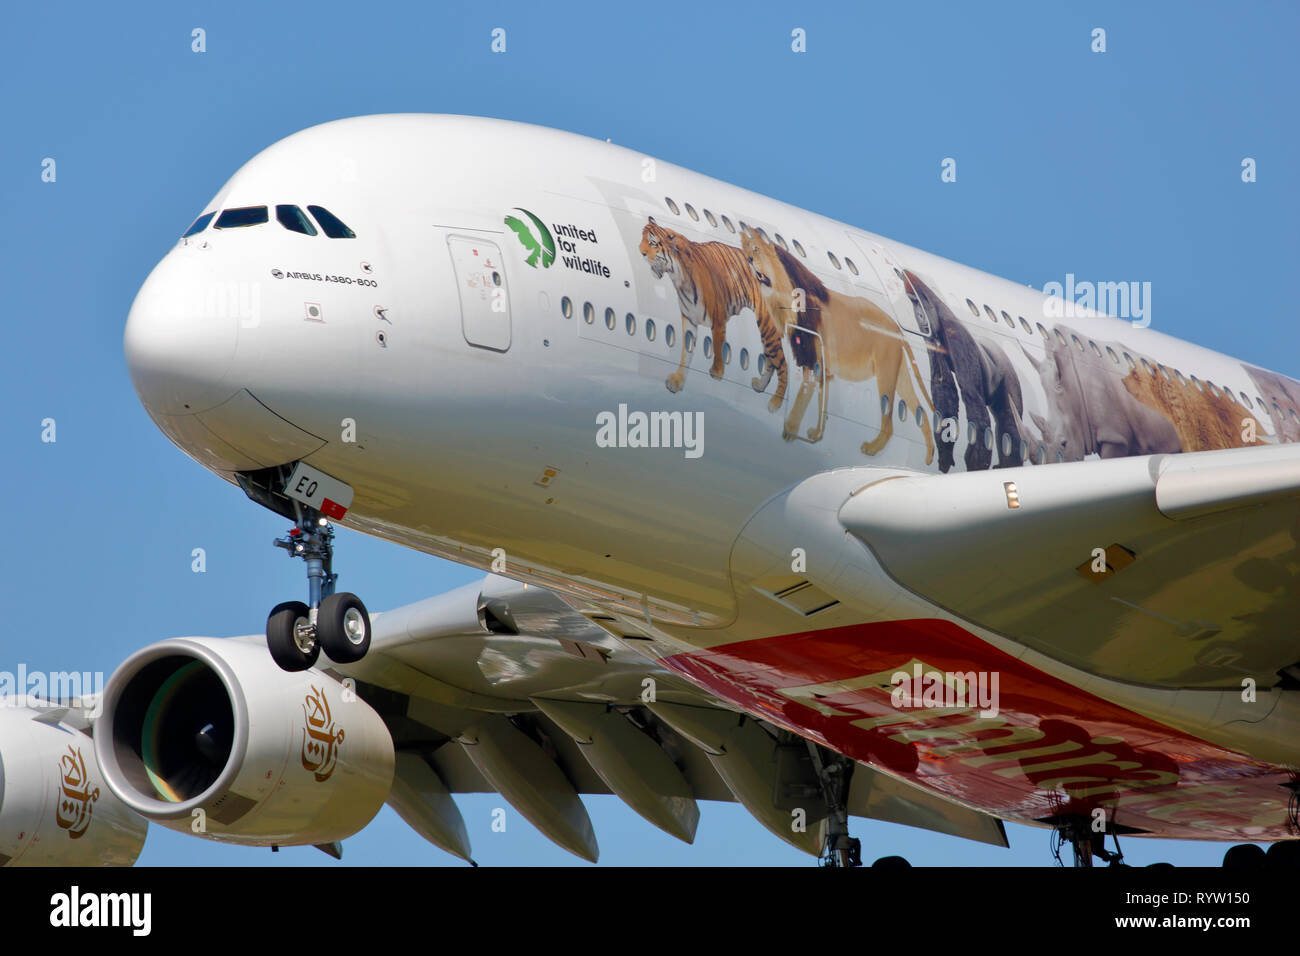 A6-EEQ Emirates Airbus A380-800 on finals for landing at London Heathrow Airport, UK - Stock Image